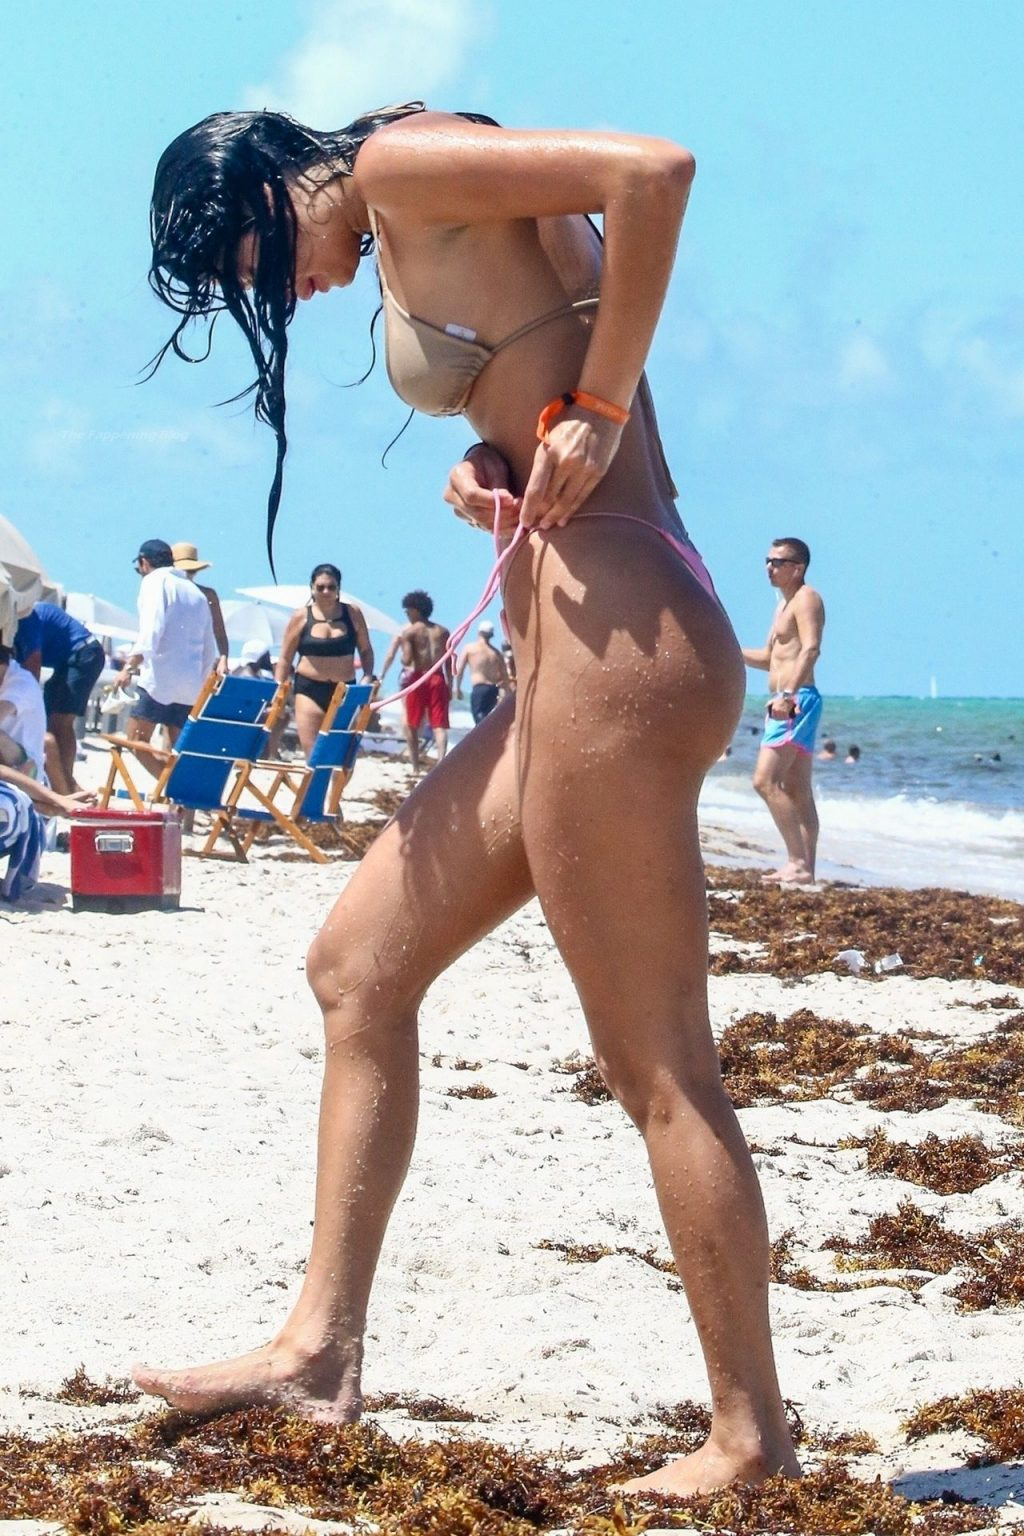 Lucciana Beynon Goes For a Dip in the Pacific (25 Photos)